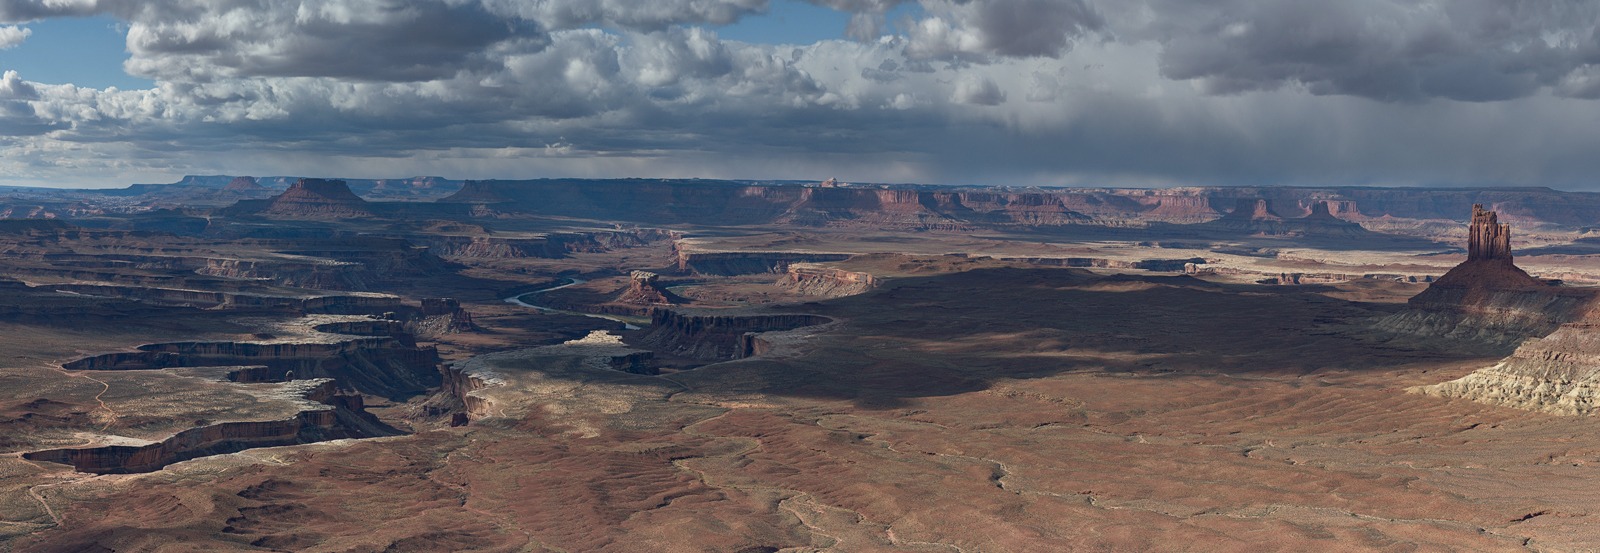 Canyonlands, panoramic, landscape, photography, storm, Green River, Utah, winter, panoramique, shadows, ombres, paysage, photo